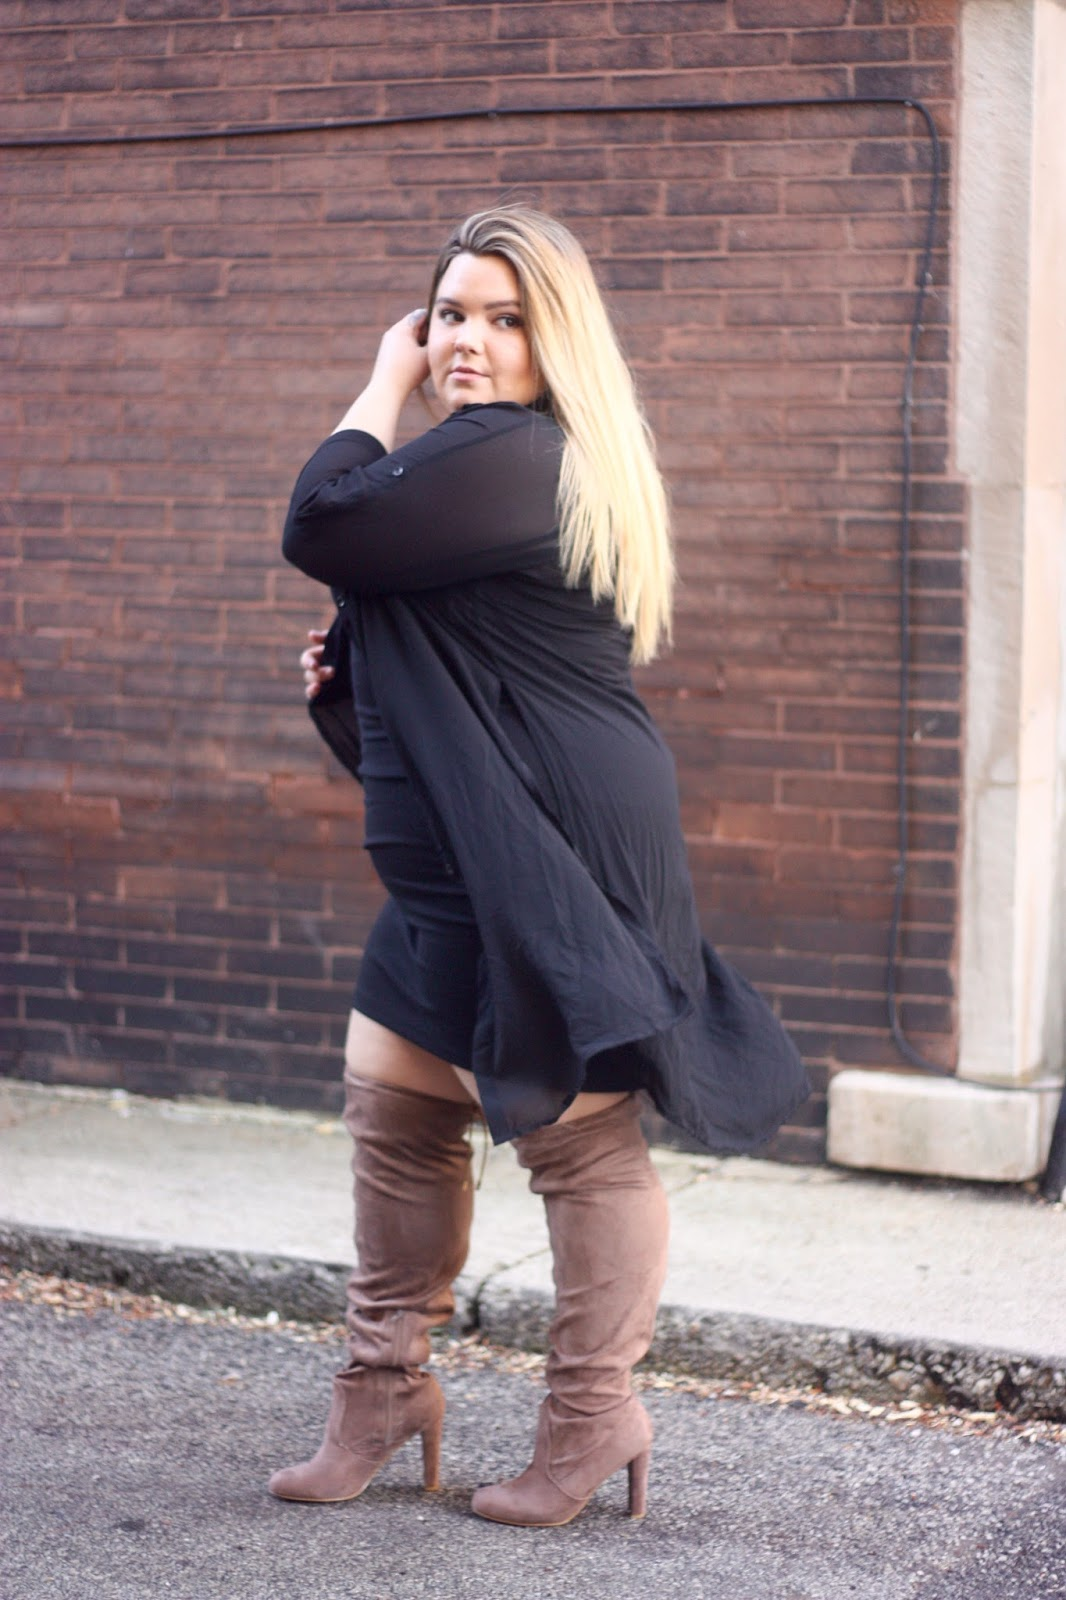 wide calf thigh high boots, where to find wide calf boots, plus size fashion blogger, natalie craig, chicago blogger, chicago, midwest blogger, lifestyle blogger, fashion, what fat girls wear, curvy, thigh high suede boots, fashion to figure